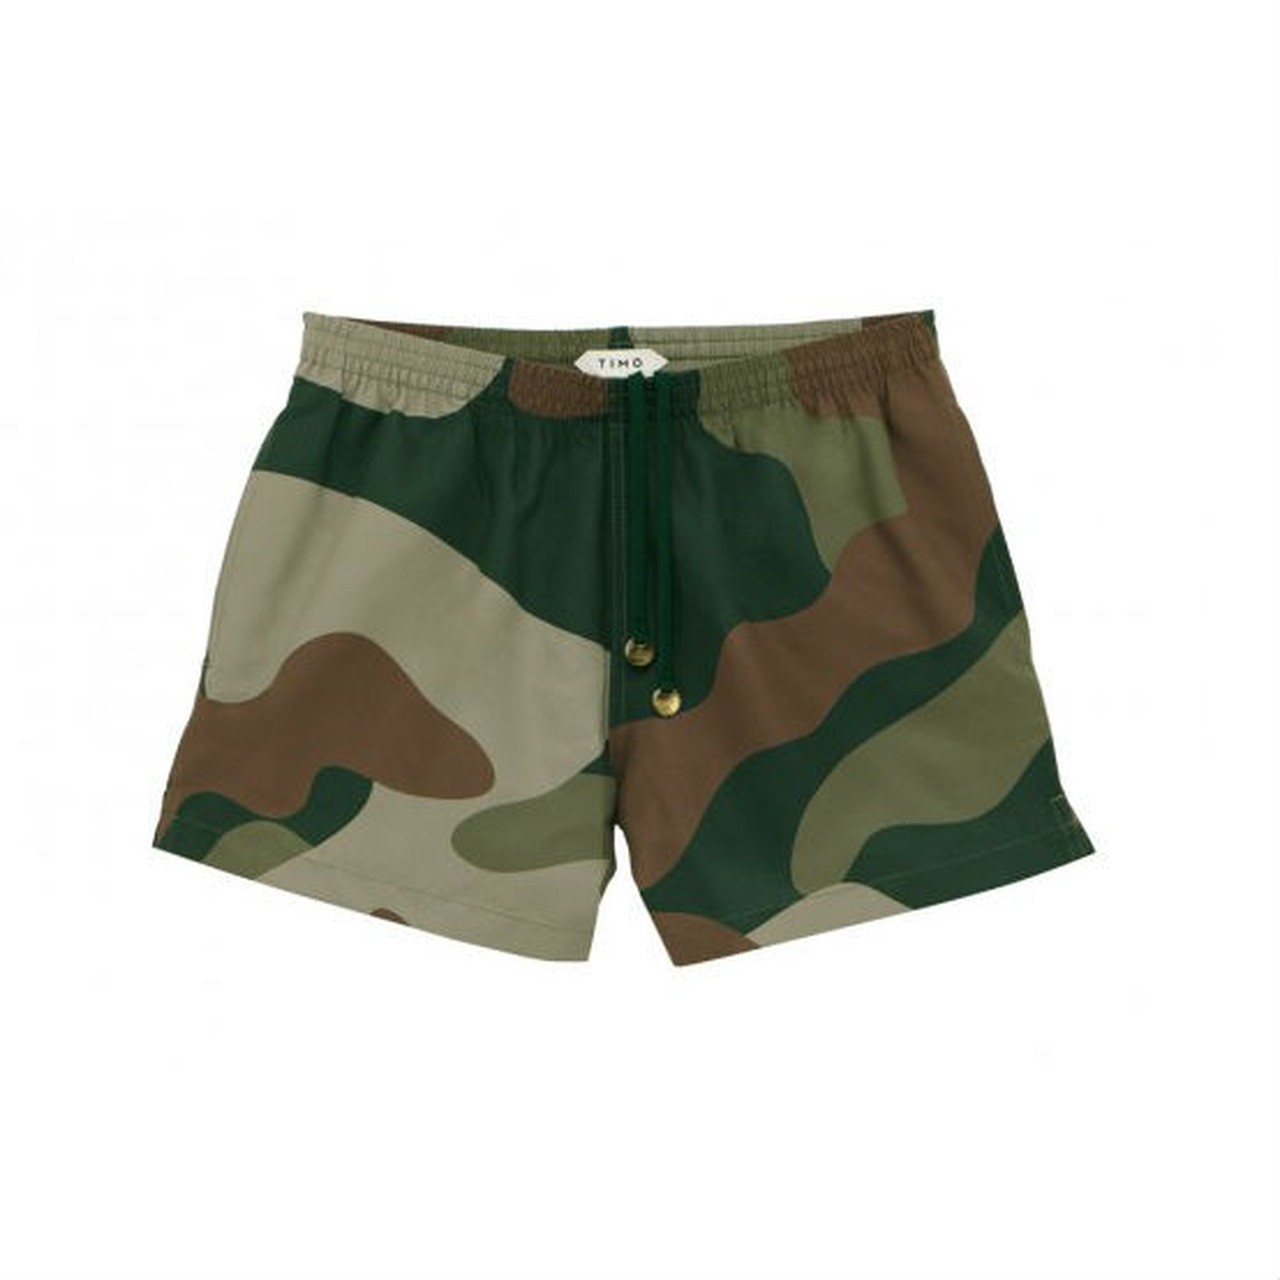 Timo Edition Trunks Camo Green in Camo